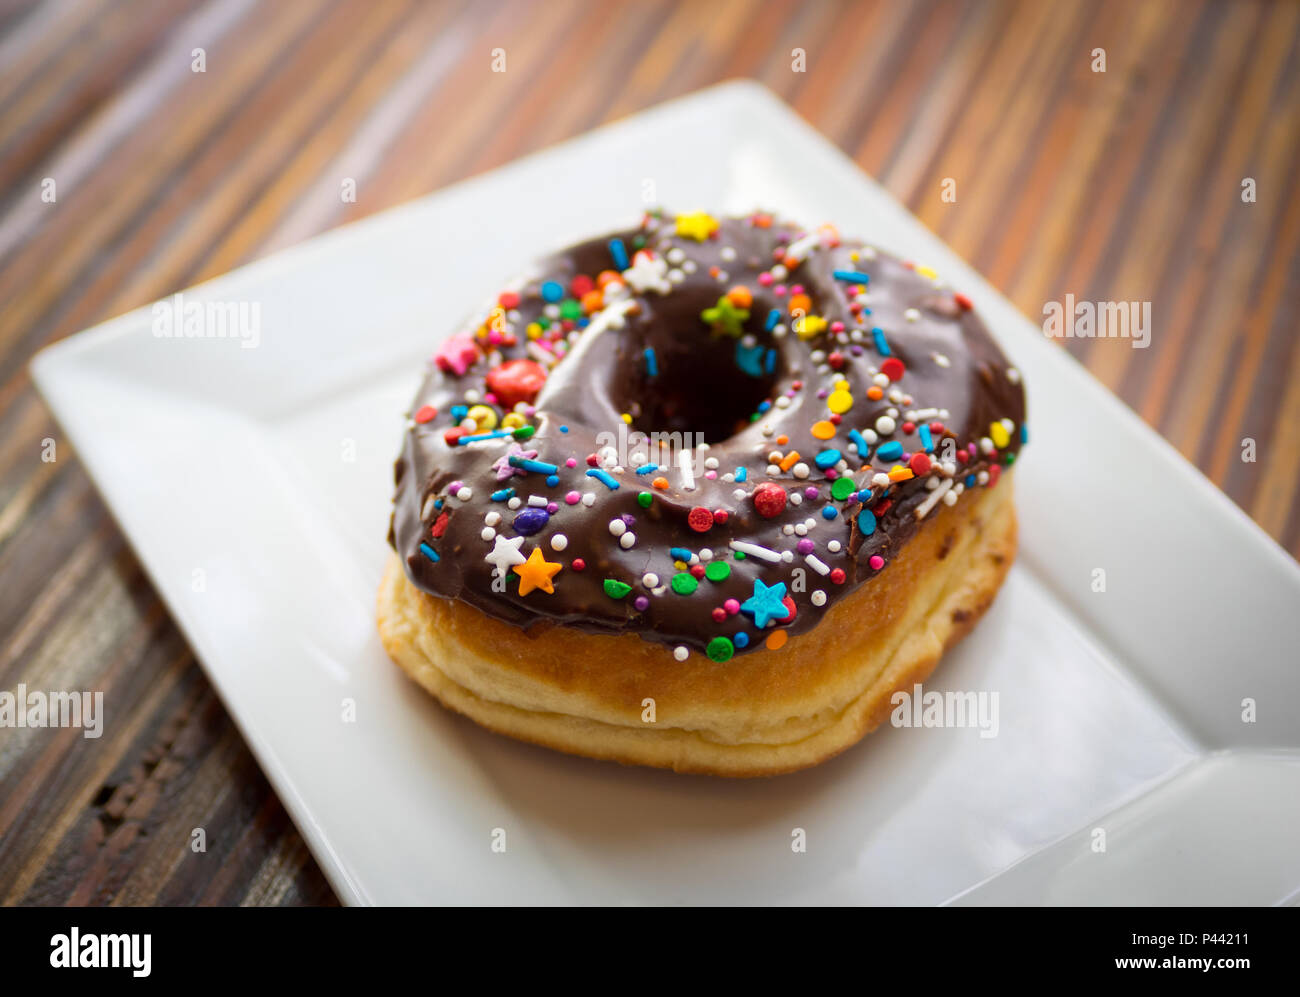 A chocolate donut with sprinkles from Picnic Too, a popular cafe and restaurant in Victoria, British Columbia, Canada. - Stock Image